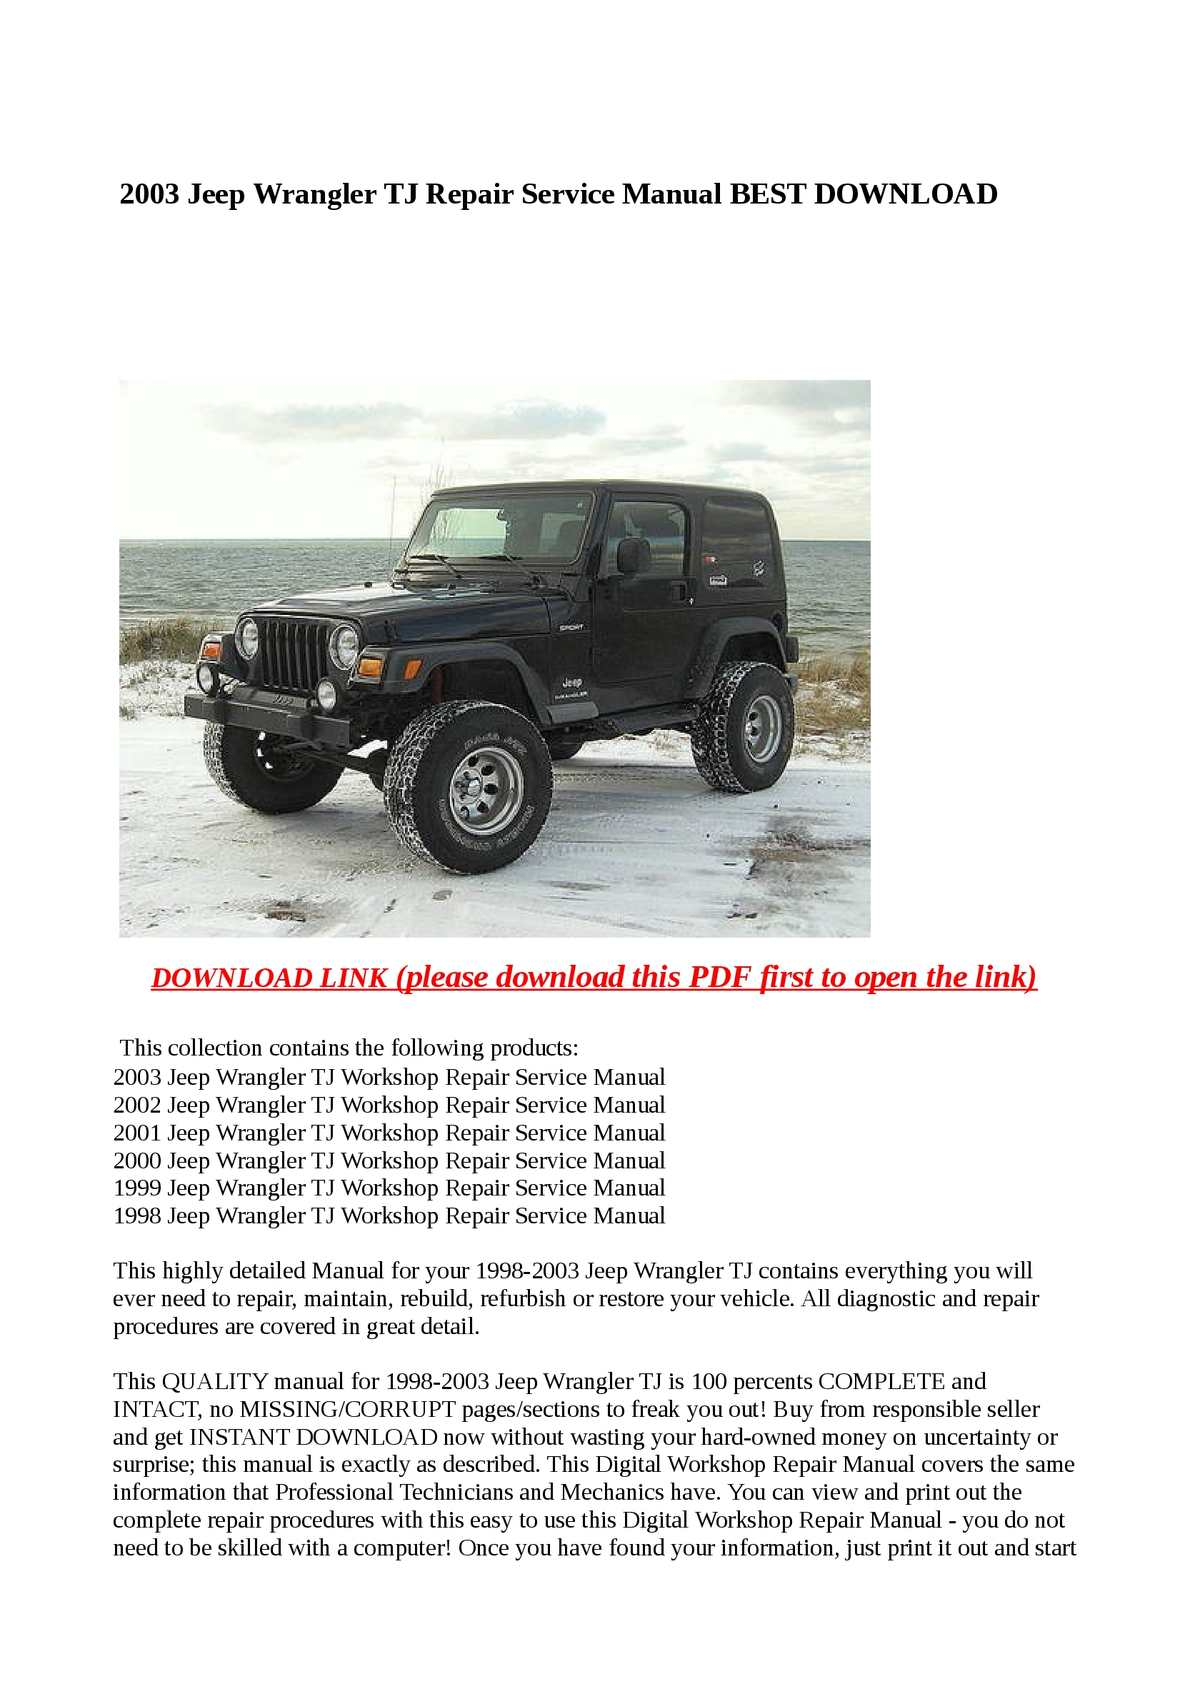 calam o 2003 jeep wrangler tj repair service manual best download rh  calameo com Custom Jeep Wrangler TJ Jeep Wrangler CJ